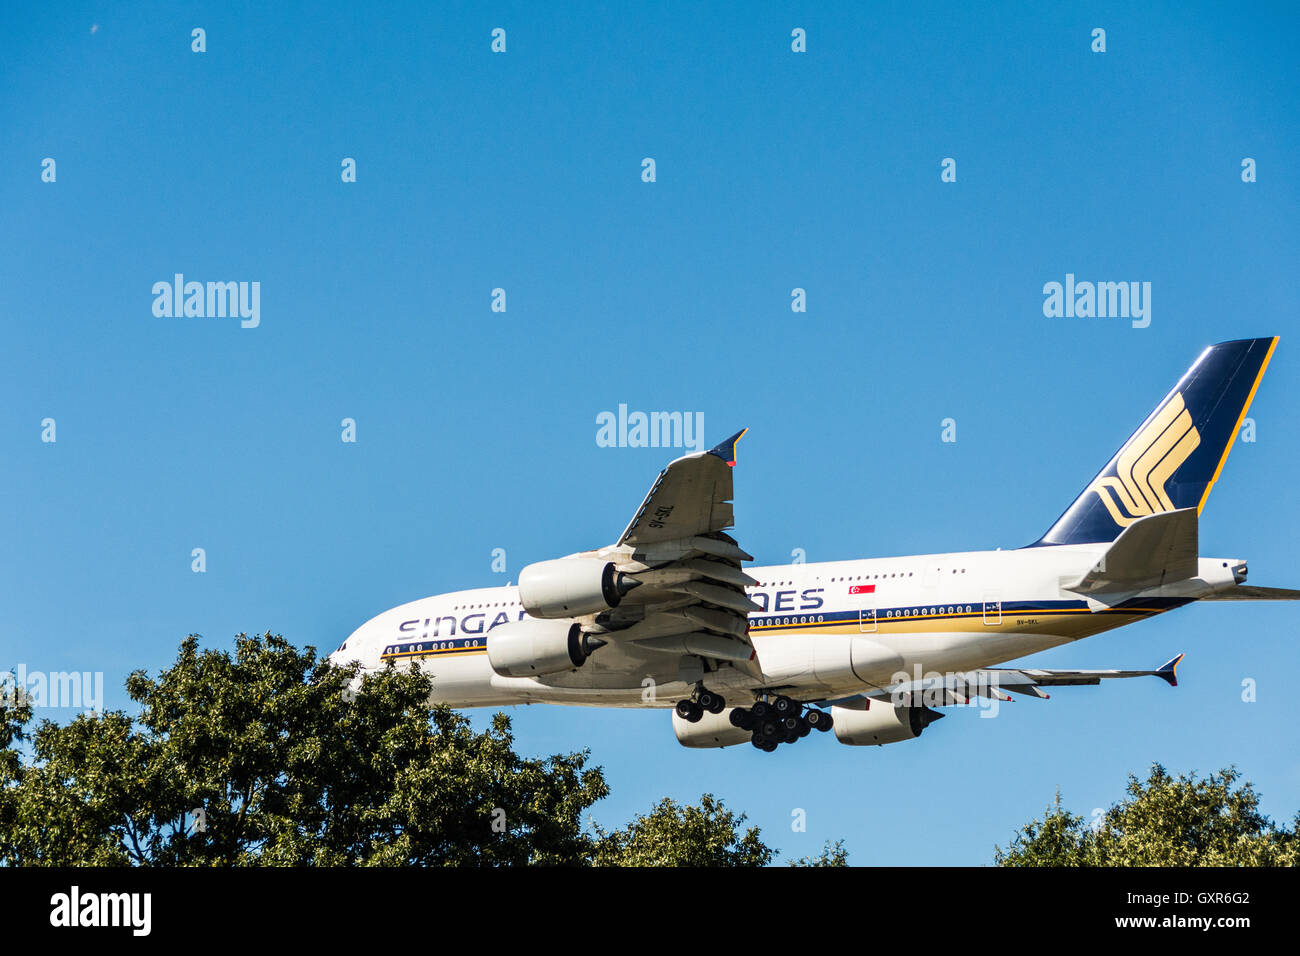 Low flying planes coming in to land at Heathrow airport, London, UK - Stock Image